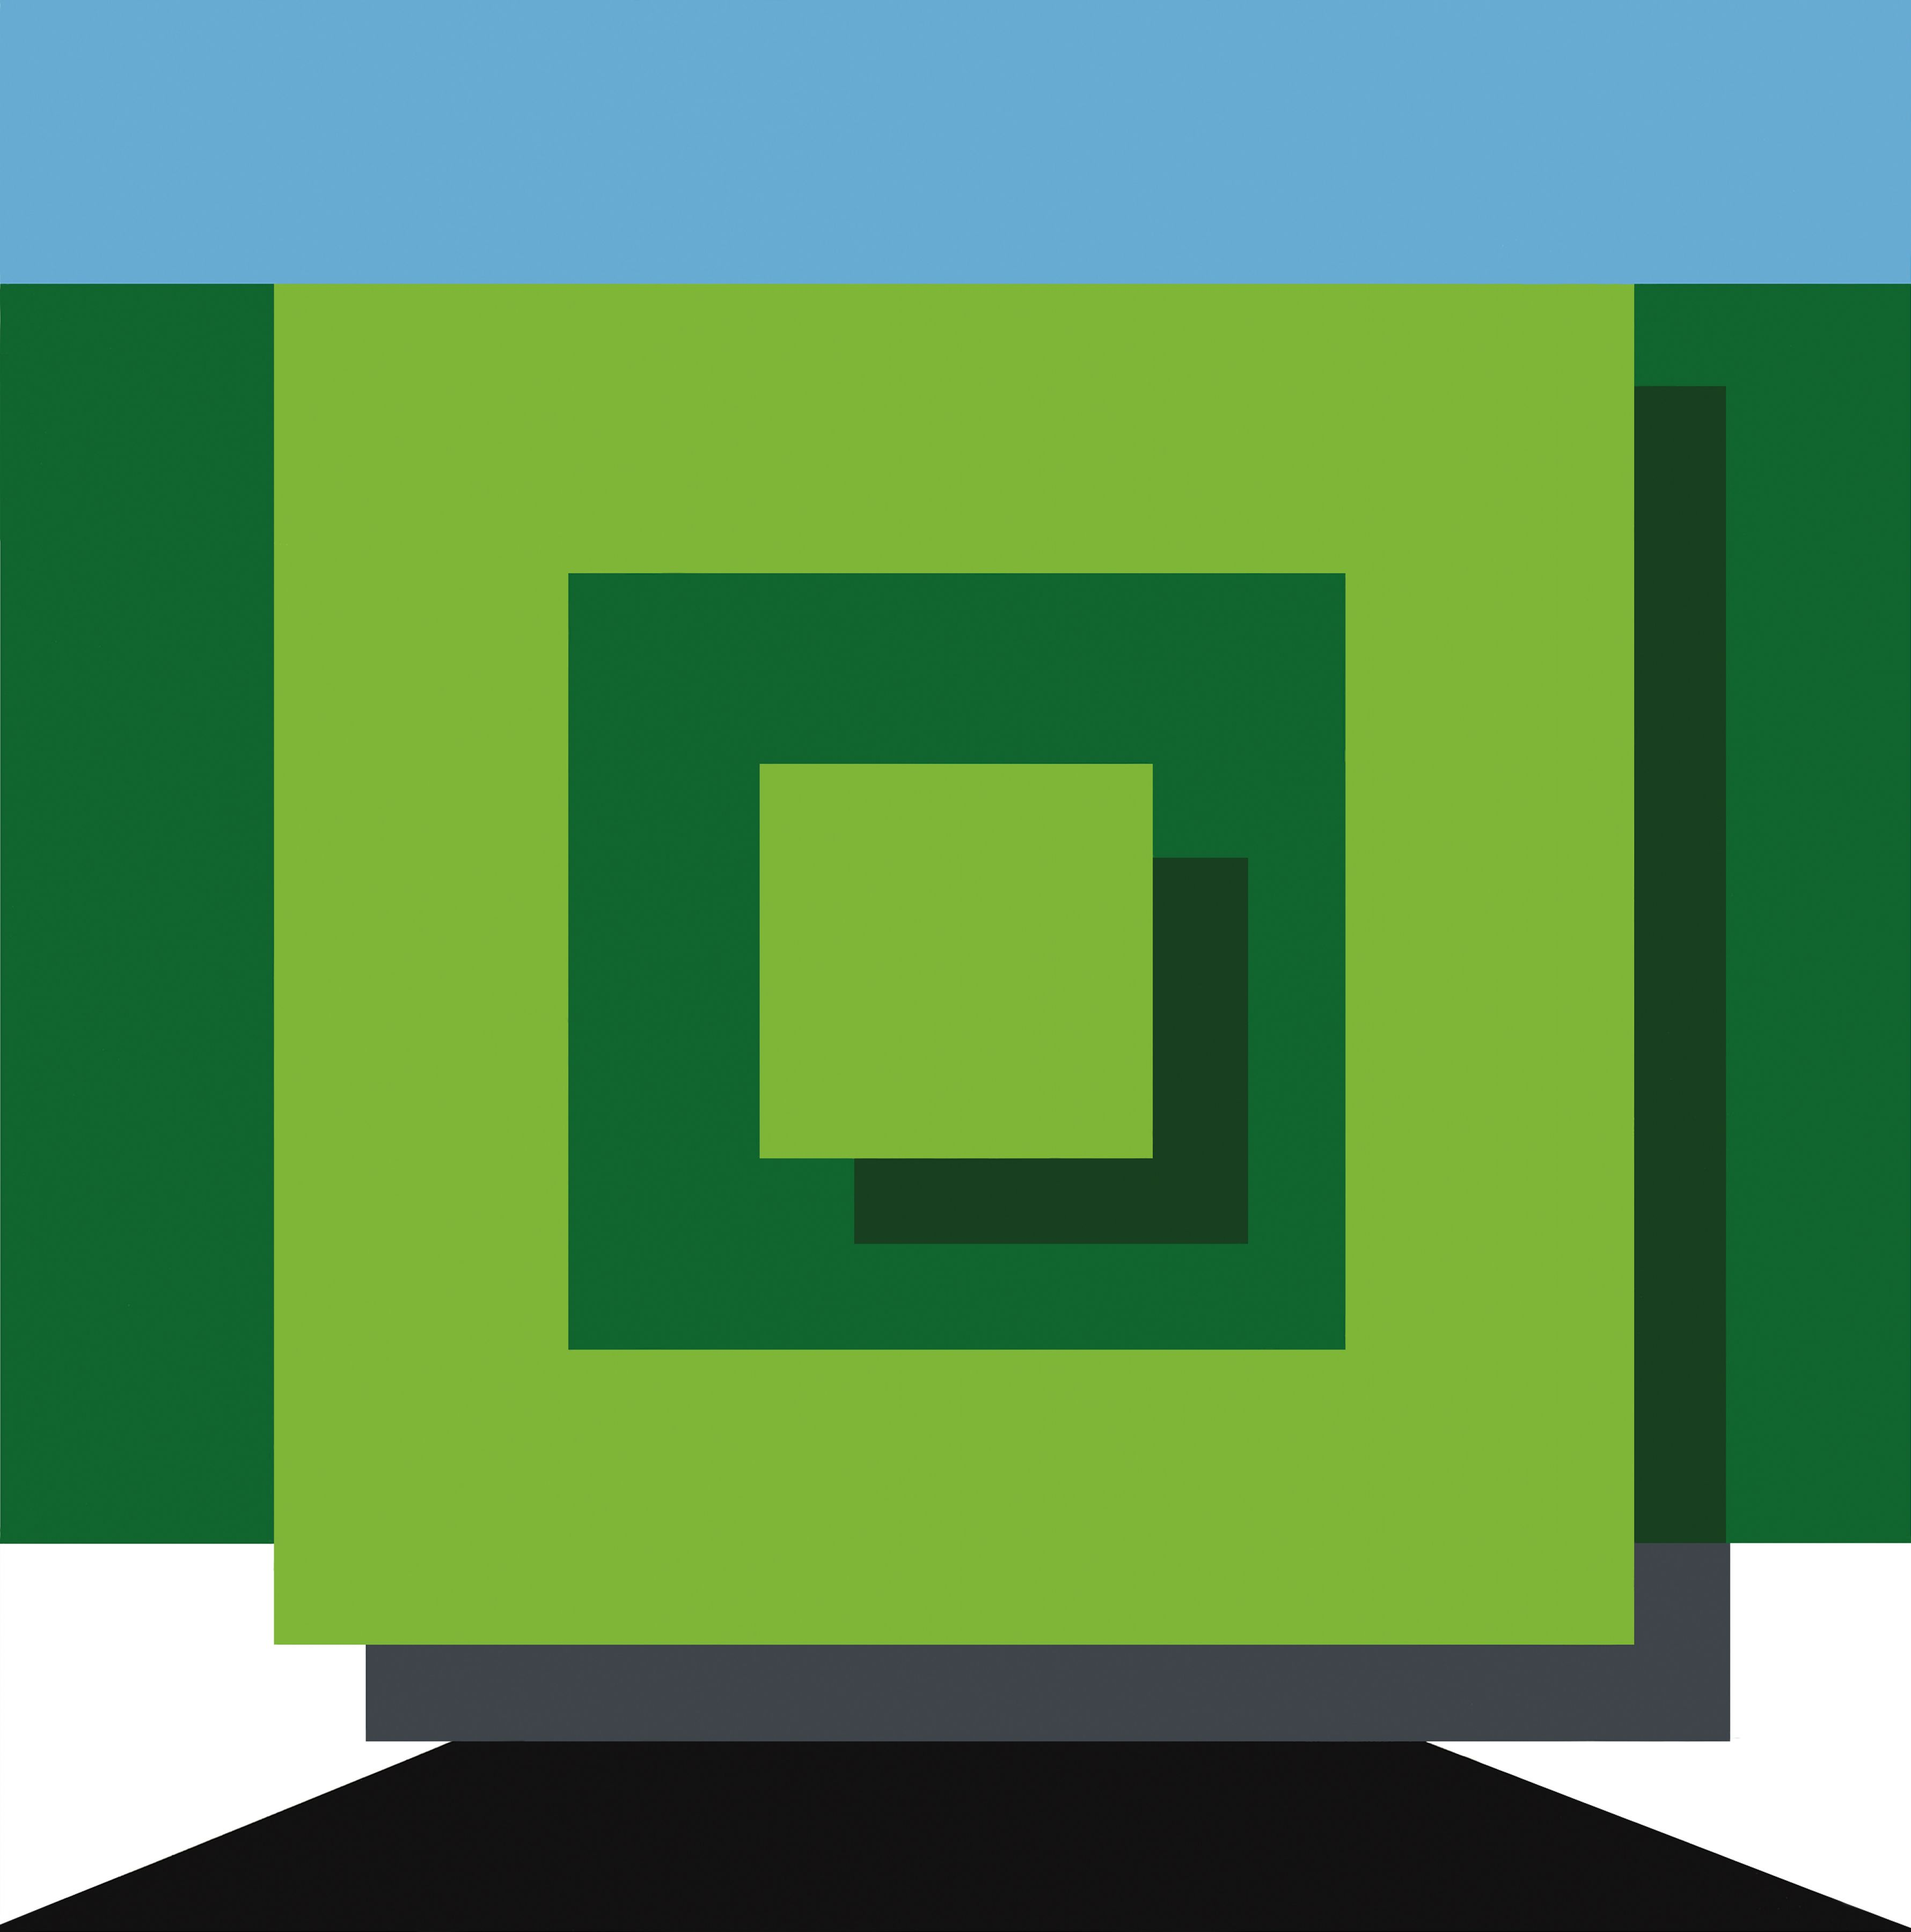 Geometric green squares with blue rectangle and black trapezoid shape